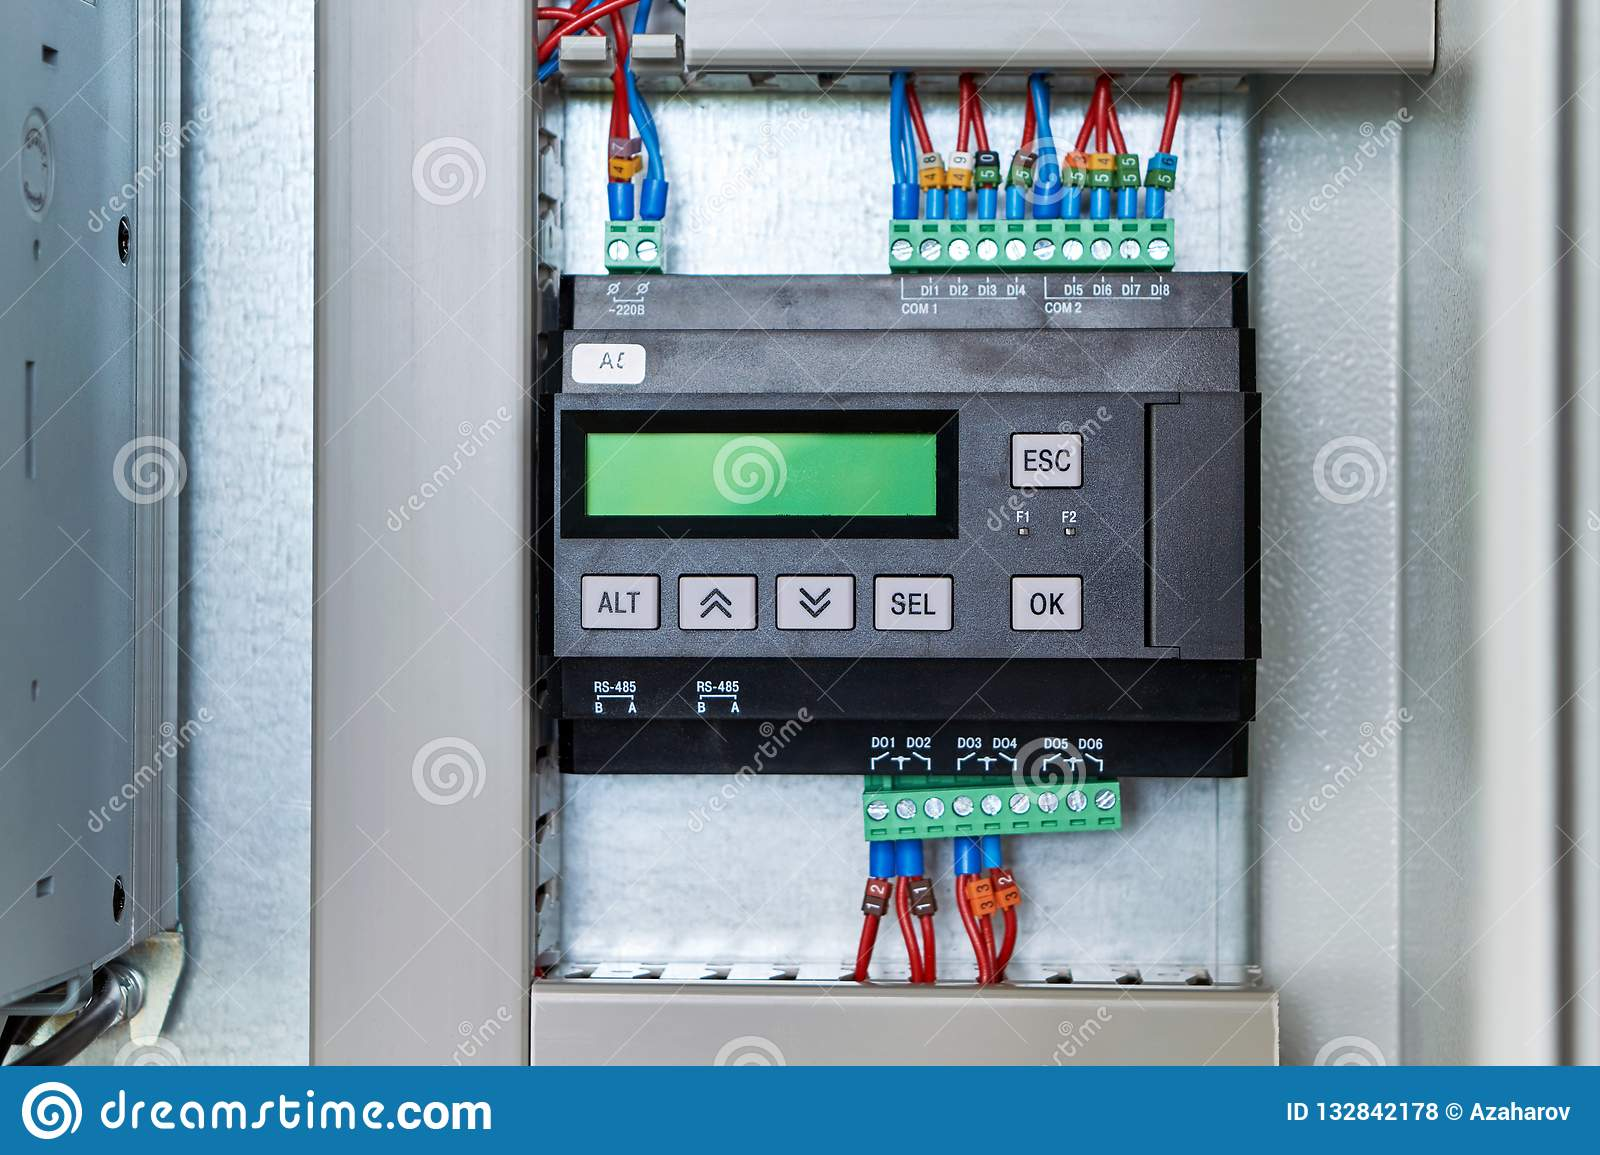 Controller or logic control relay in electrical Cabinet